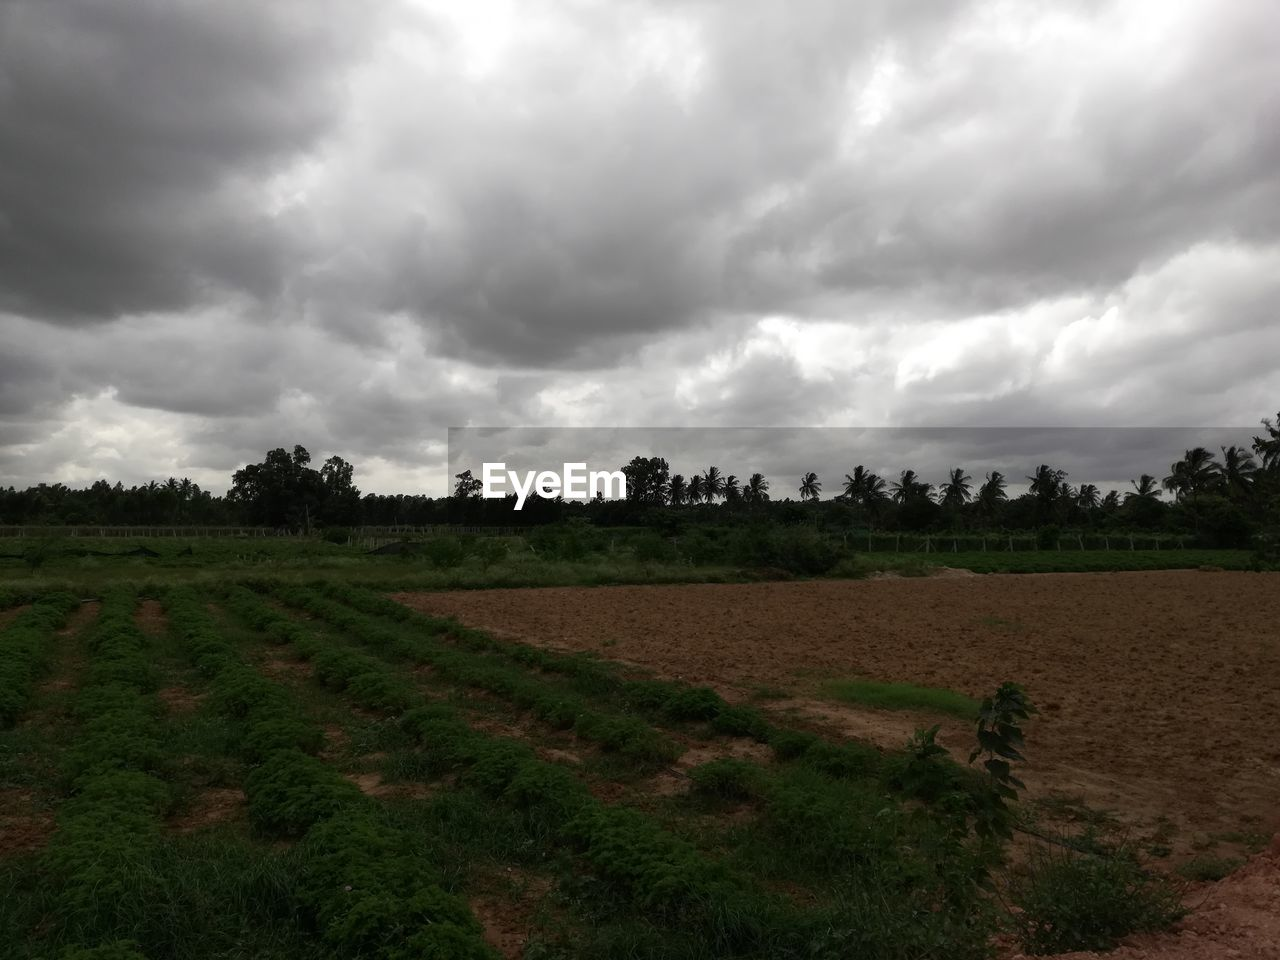 cloud - sky, sky, landscape, environment, plant, land, field, scenics - nature, tree, tranquil scene, tranquility, beauty in nature, nature, rural scene, agriculture, no people, growth, day, overcast, outdoors, ominous